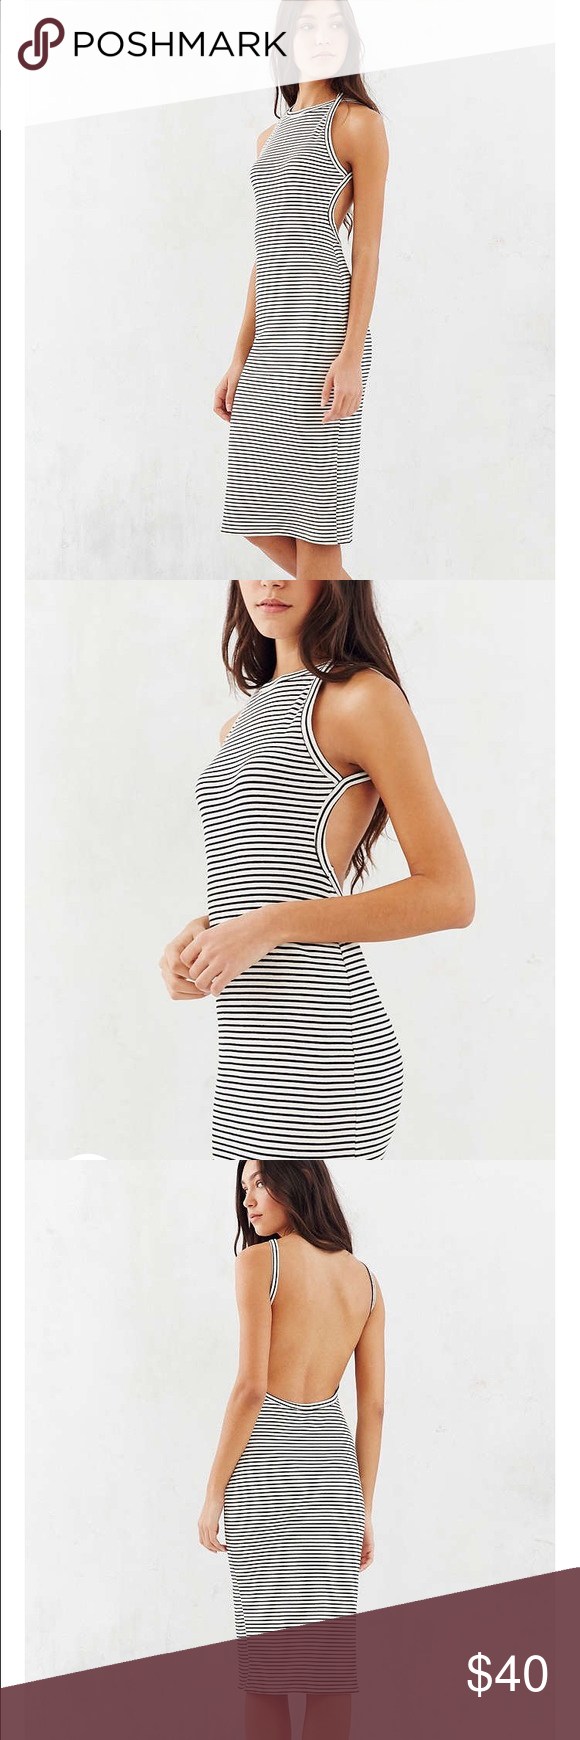 Silence and Noise Harness Strap Open-Back Dress White and black strapless sleeveless rib knight midi dress with a sexy plunging back, super stretchy, cuts right below the knee, high neck halter strap. Never Worn. Urban Outfitters Dresses Midi